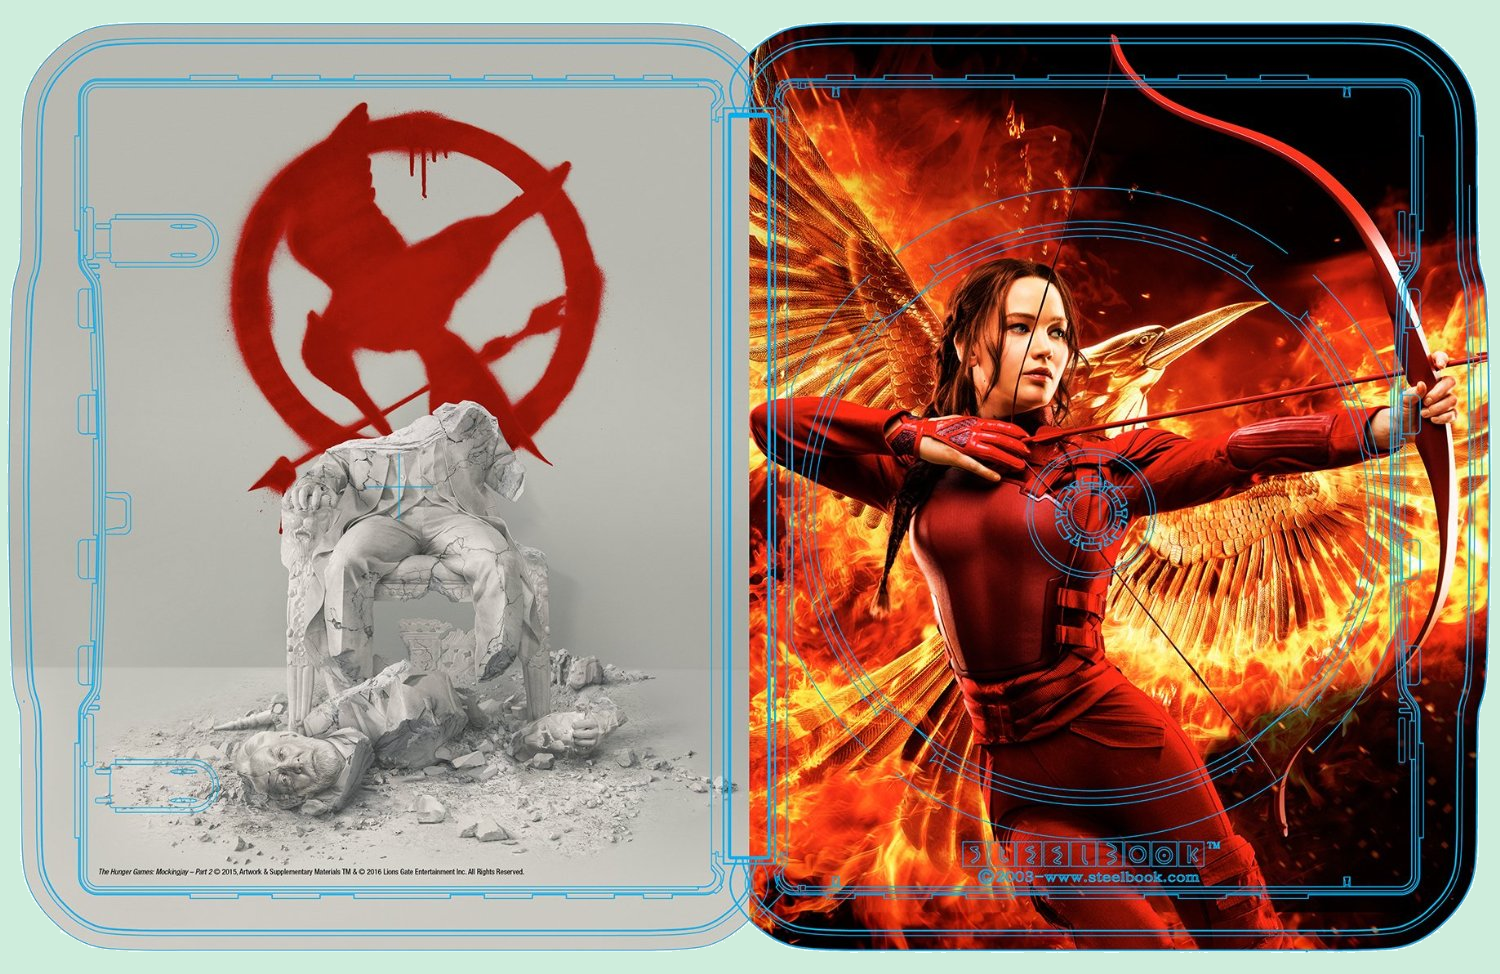 blu-ray-steelbook-interno-mockingjay-part-2